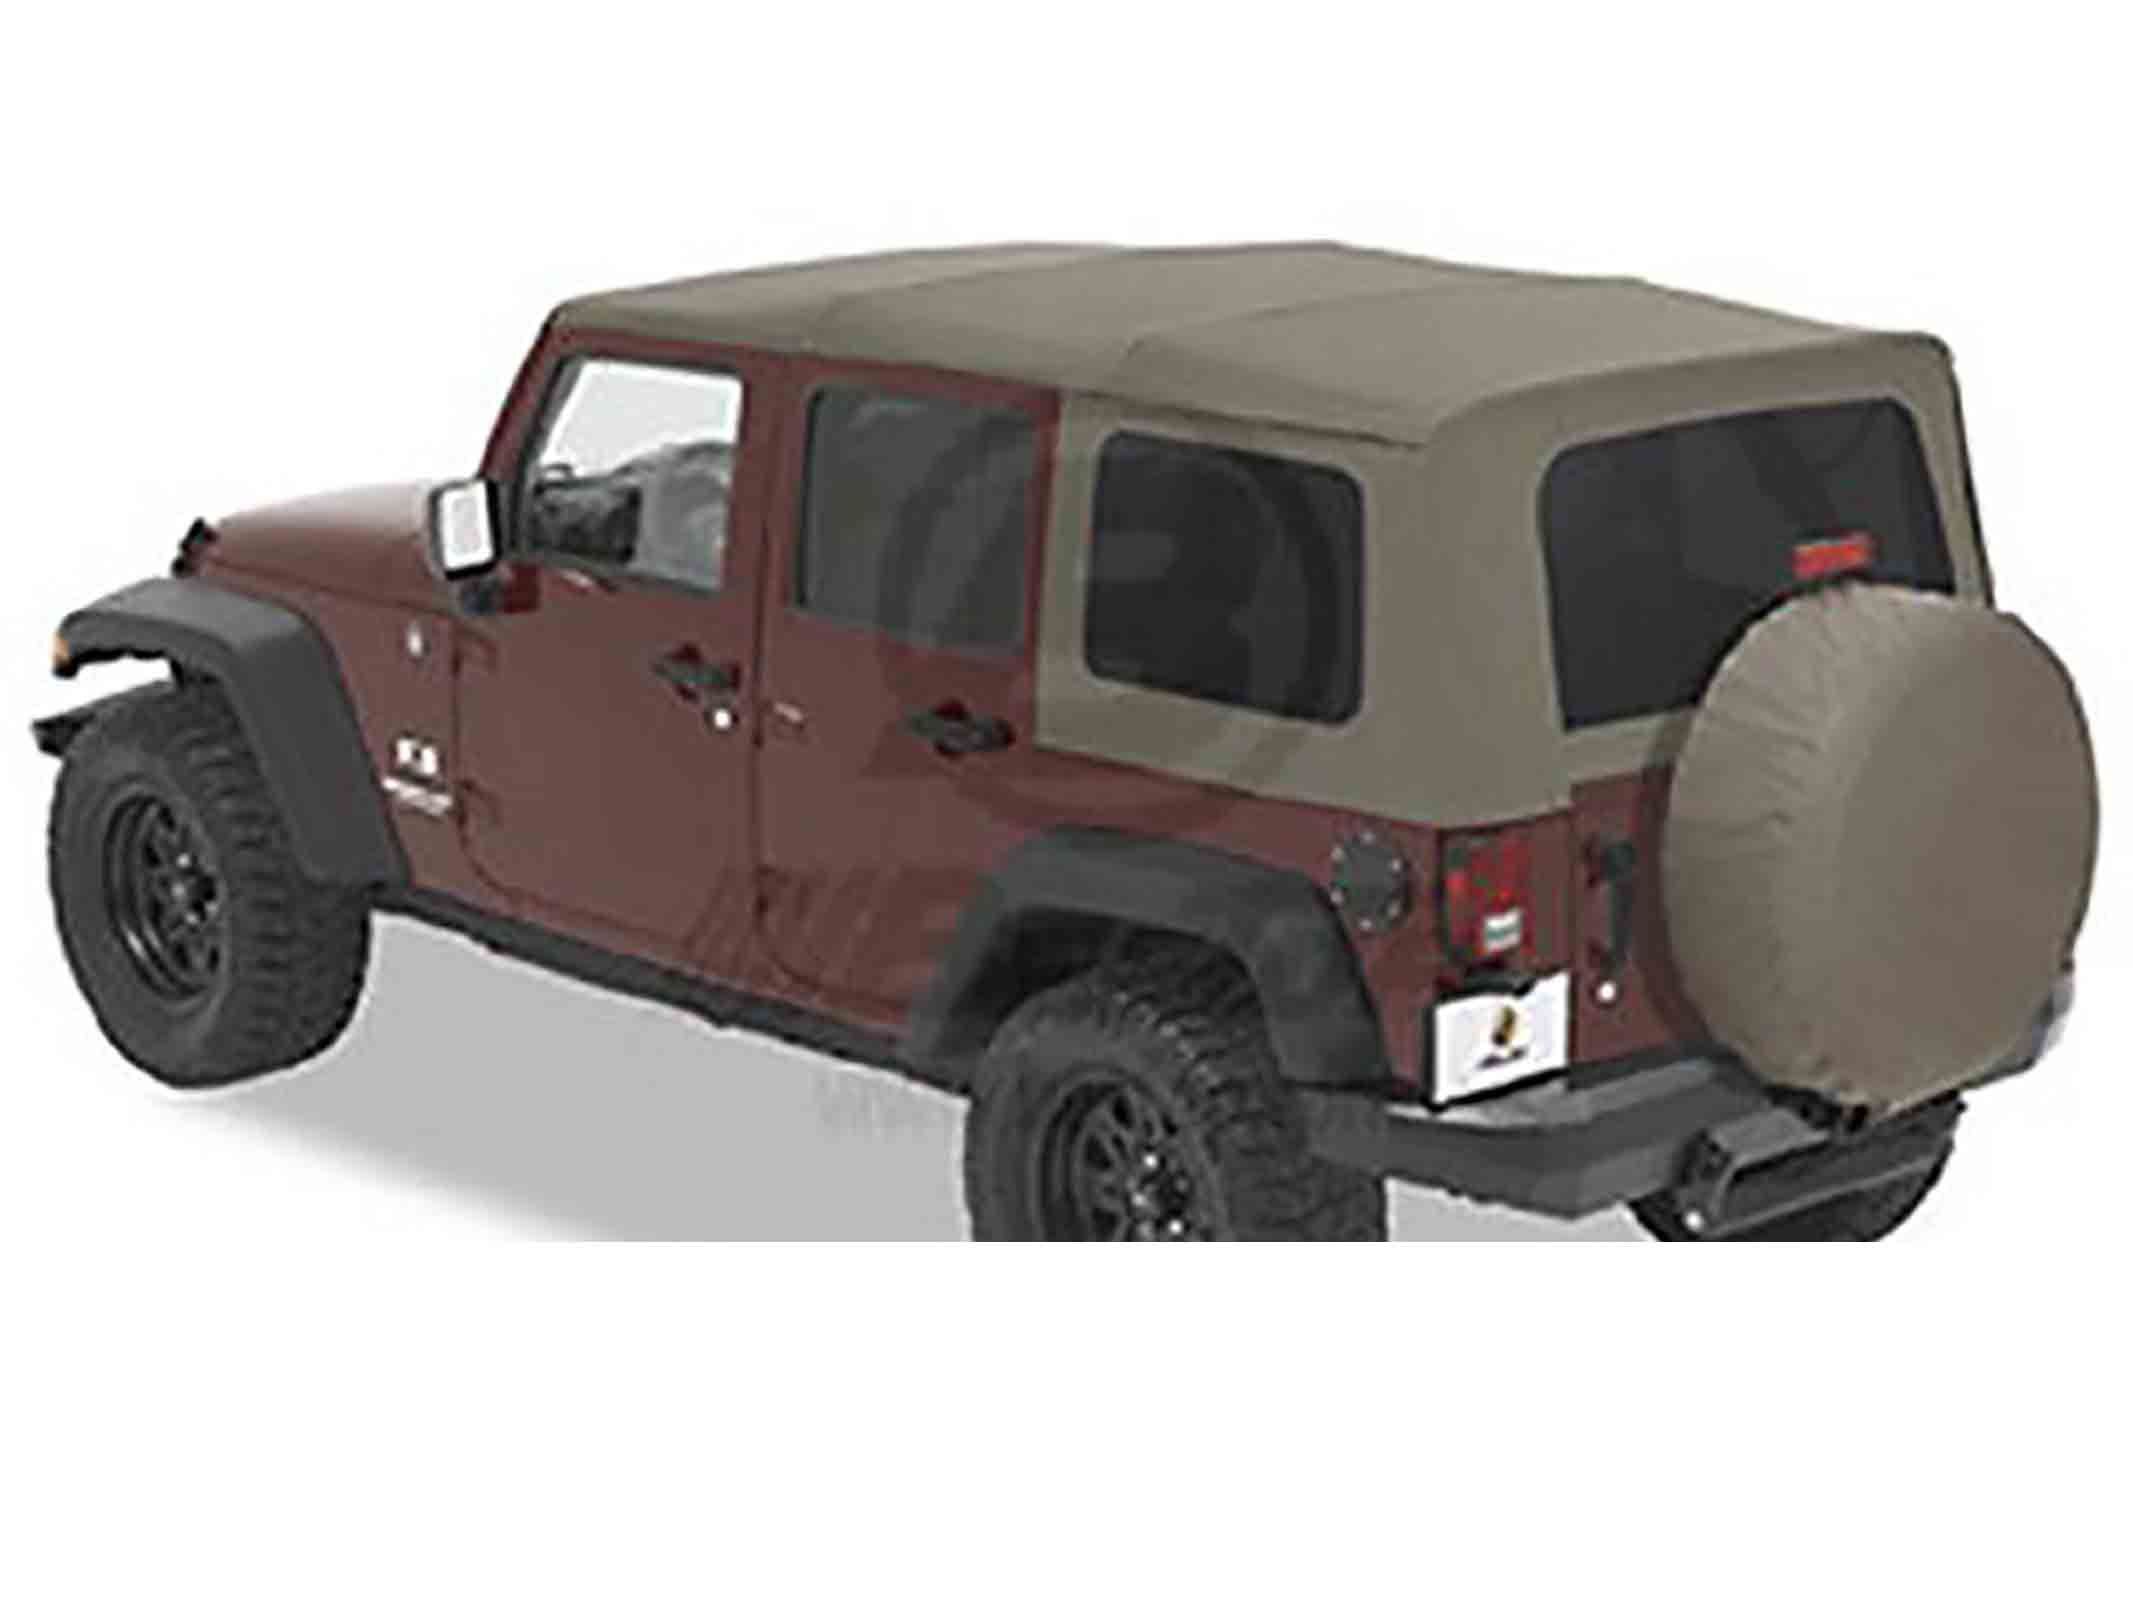 Softtop soft top capottina ricambio wrangler jk unlimited 07 09 khaki dia 4 porte ricambi jeep